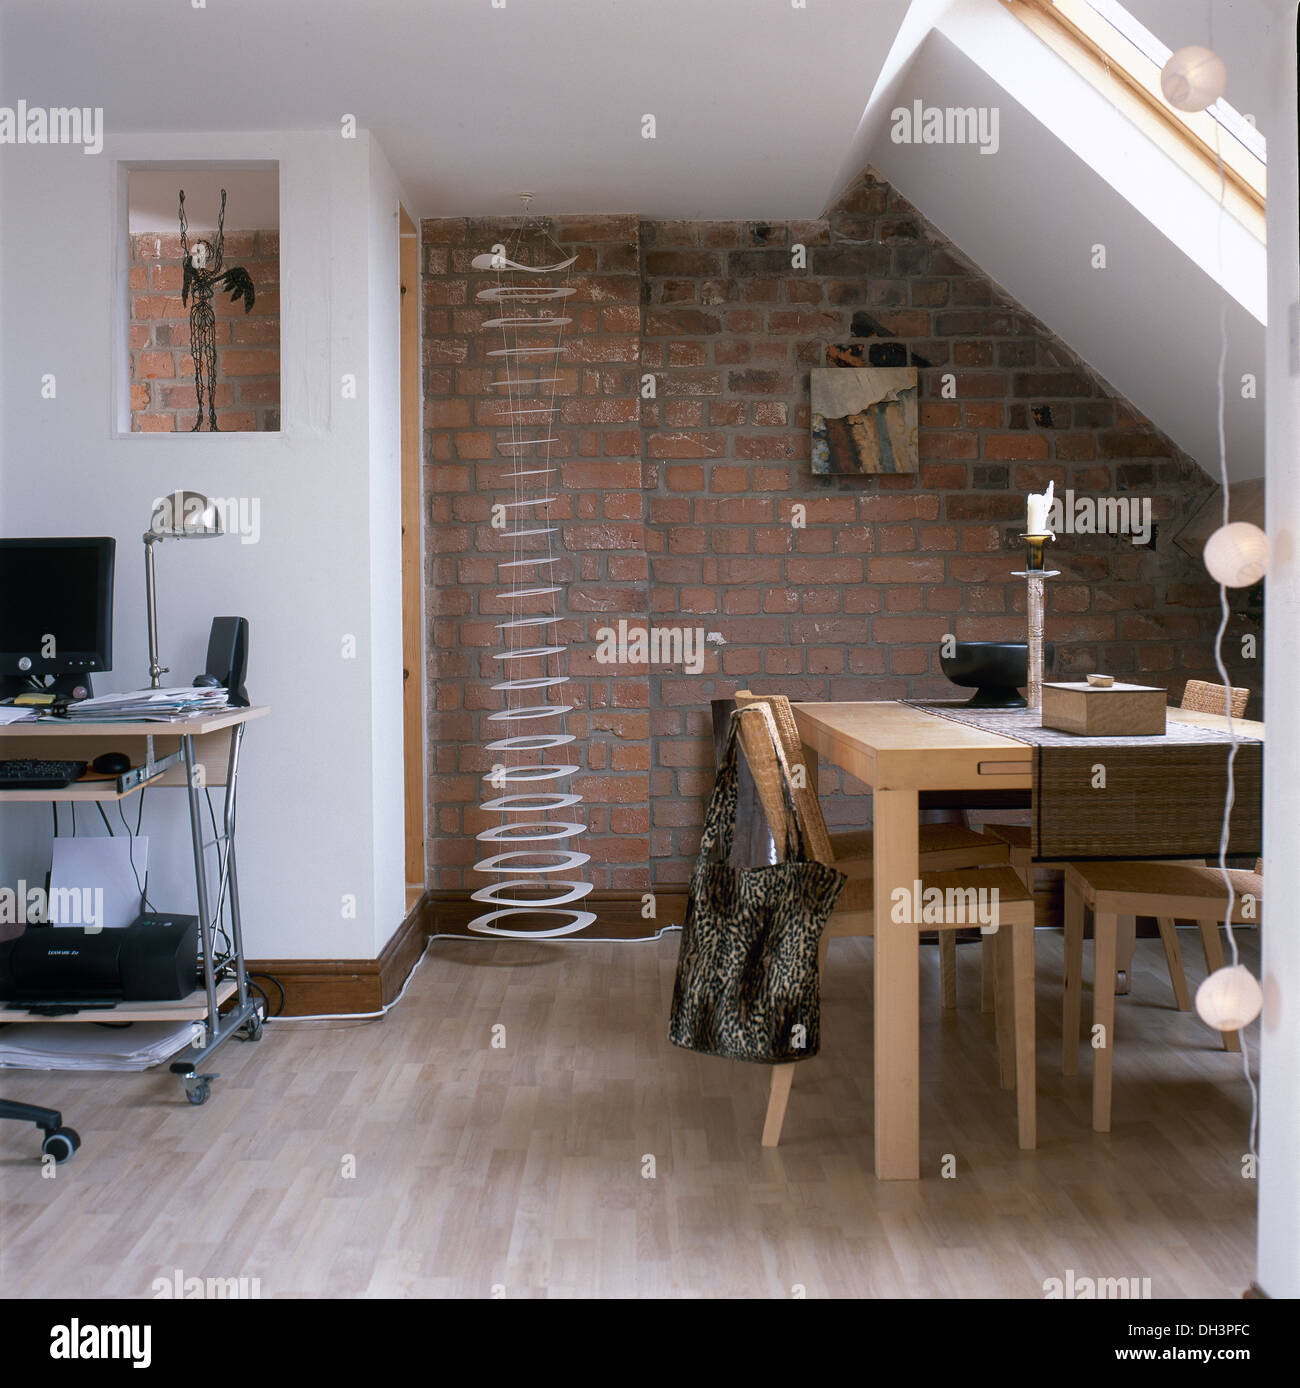 small loft furniture. Pale Wood Table And Chairs In Dining Area Of Small Loft Conversion With Metal Spiral Sculpture Against Exposed Brick Wall Furniture